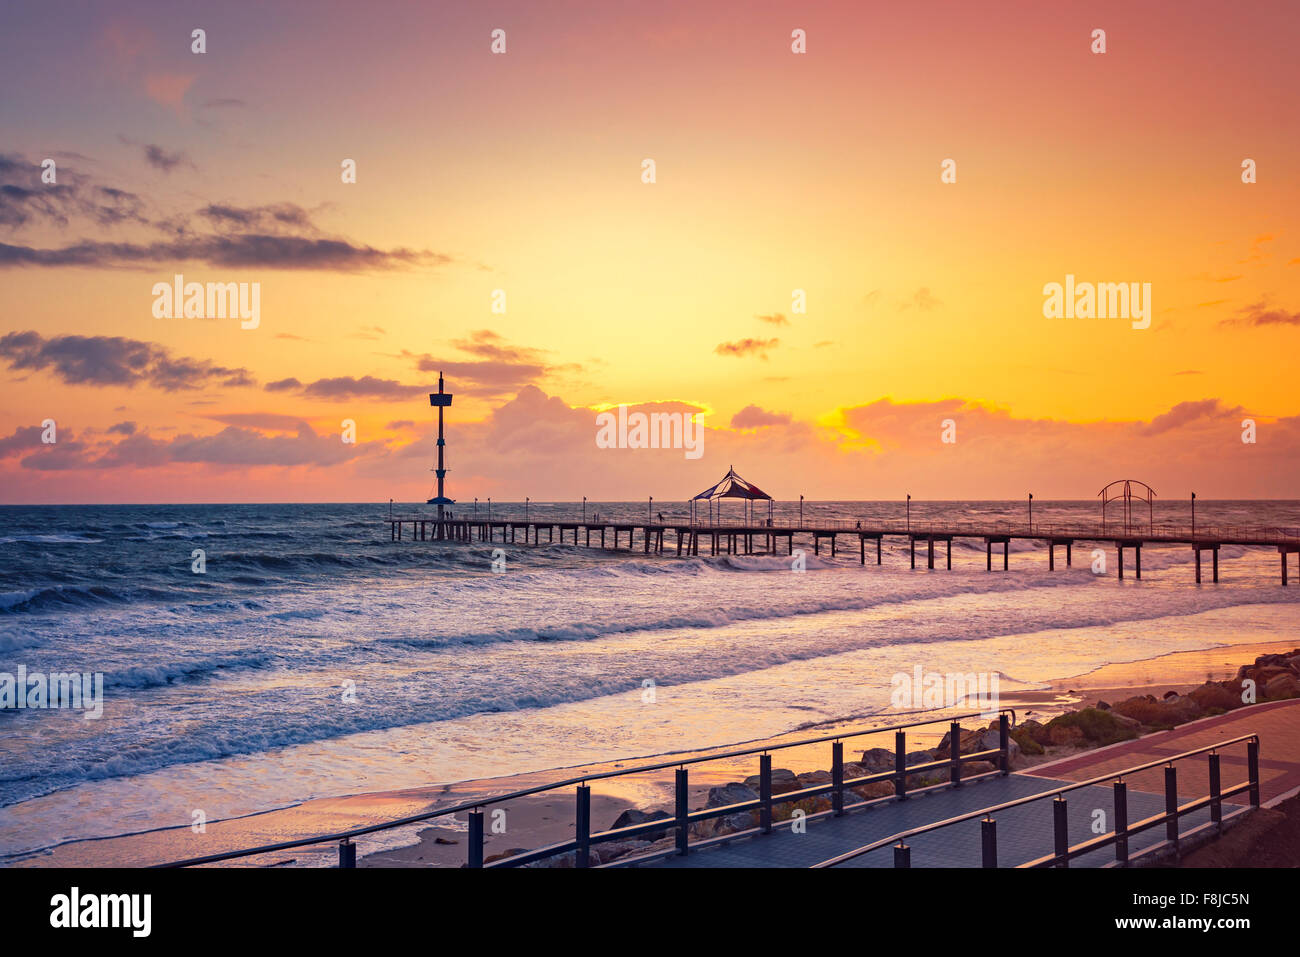 Brighton Jetty at sunset in a windy day, South Australia - Stock Image